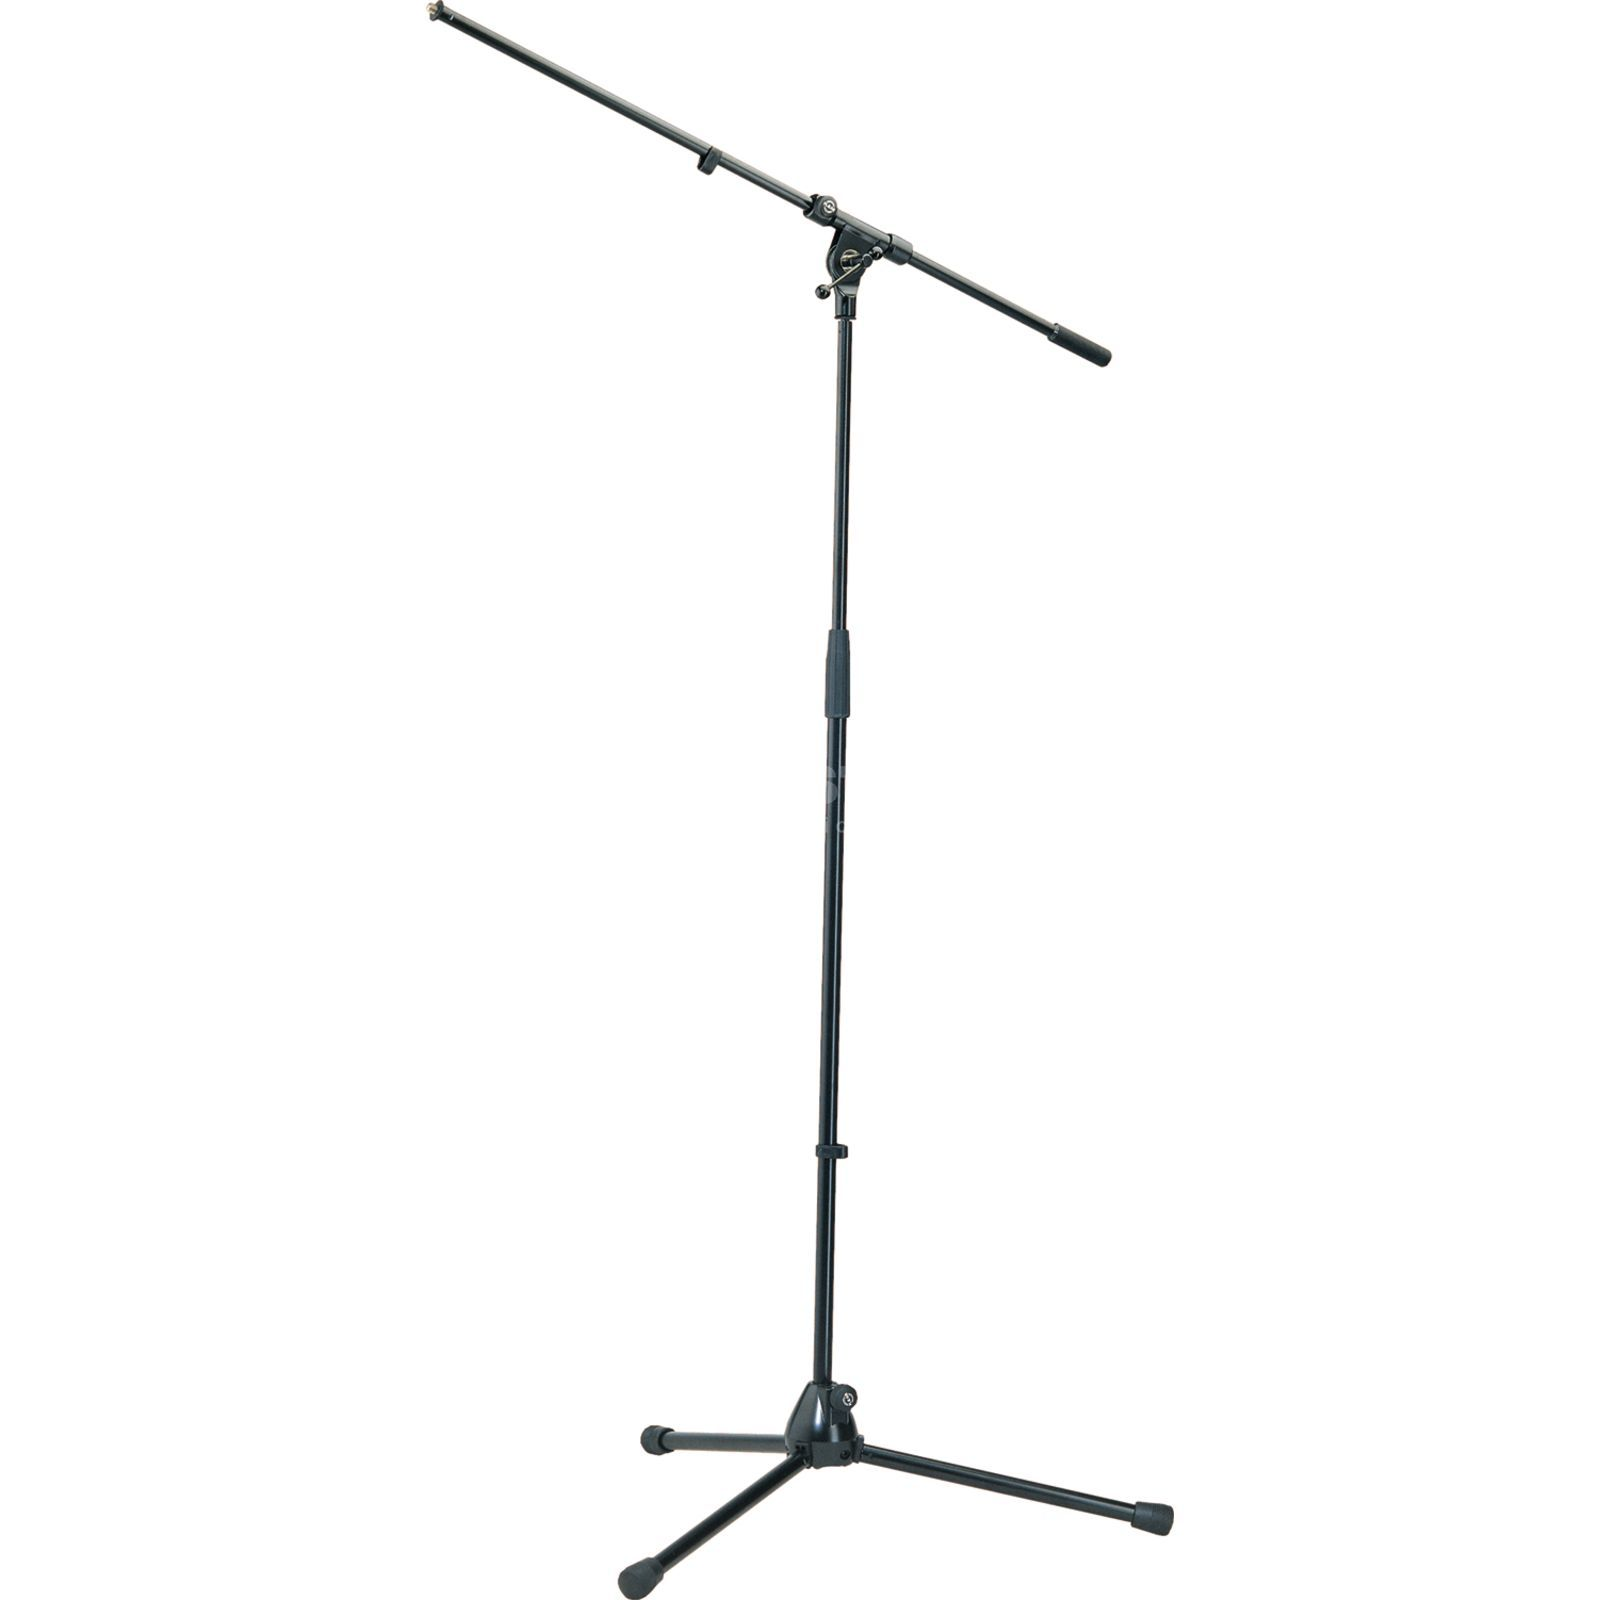 König & Meyer 210/2 Microphone Stand, black Product Image